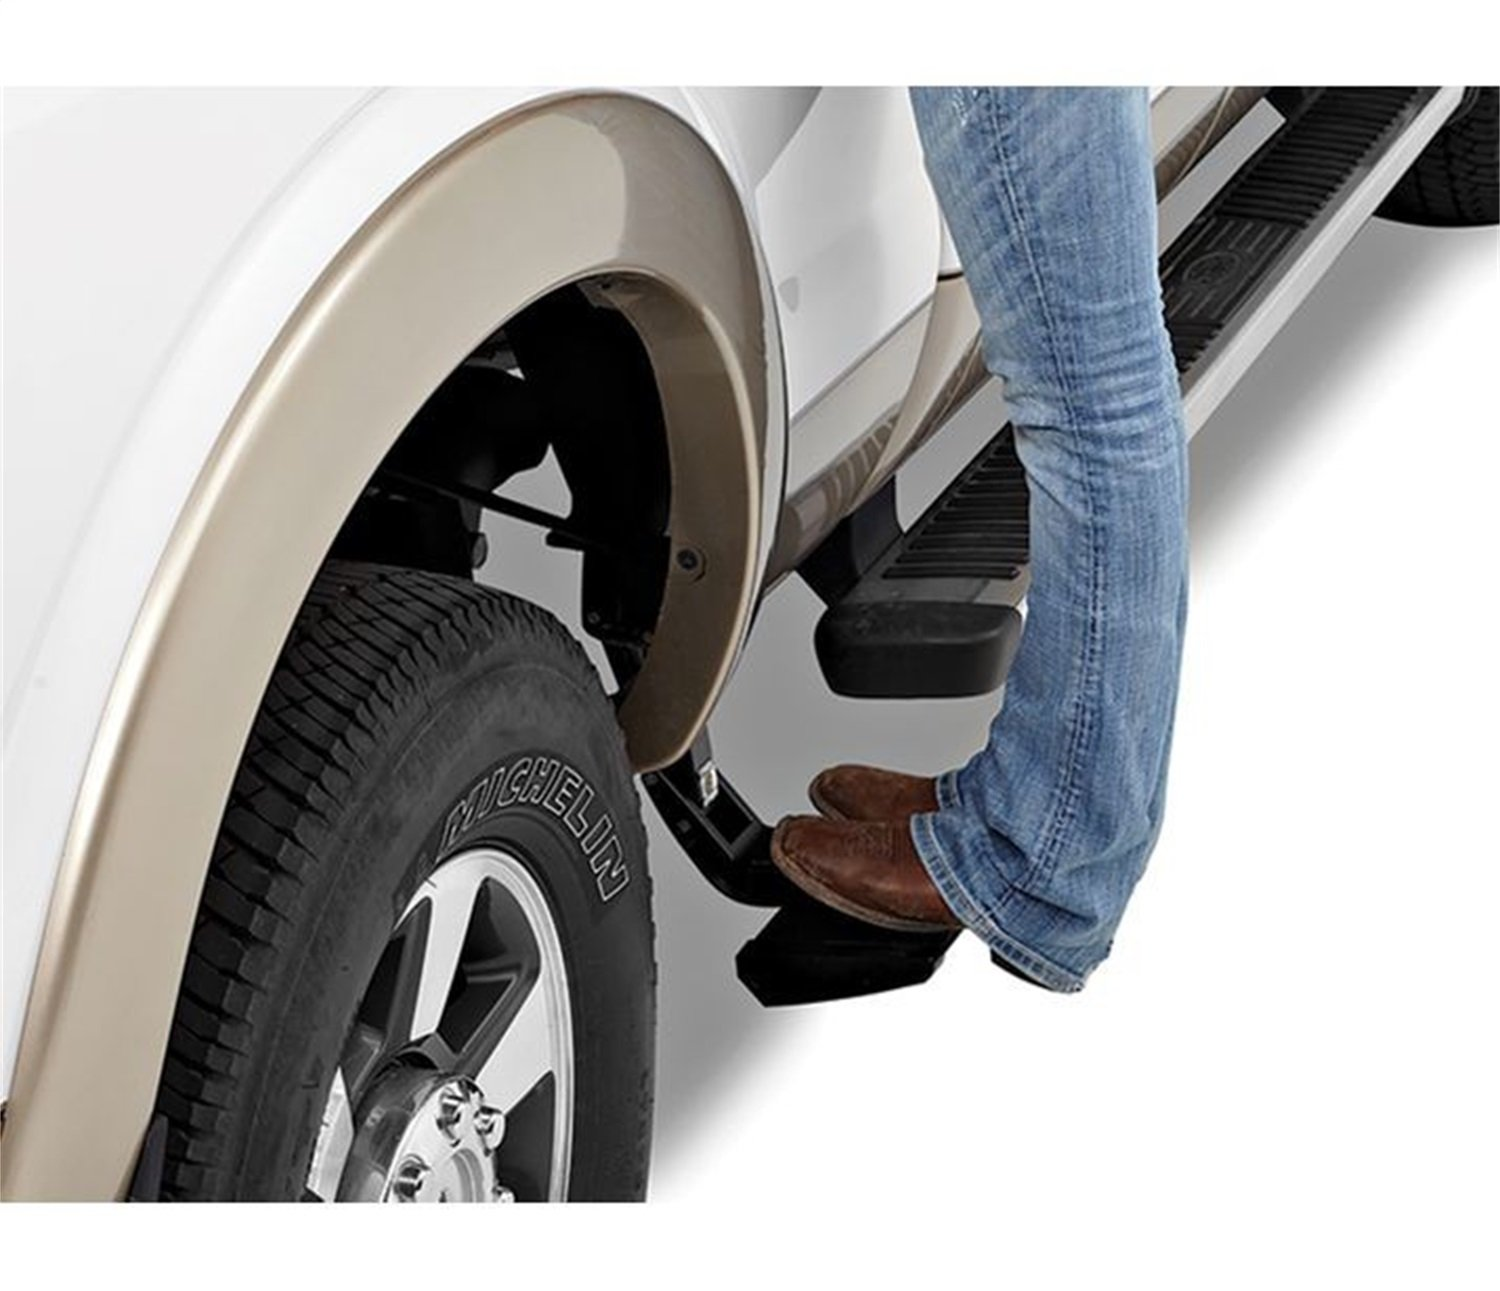 Bestop 75406-15 Side-Mounted Trekstep for 2009-2018 Dodge Ram 1500; fits Either Driver or Passenger Side only, 6.3' and 8.0' beds